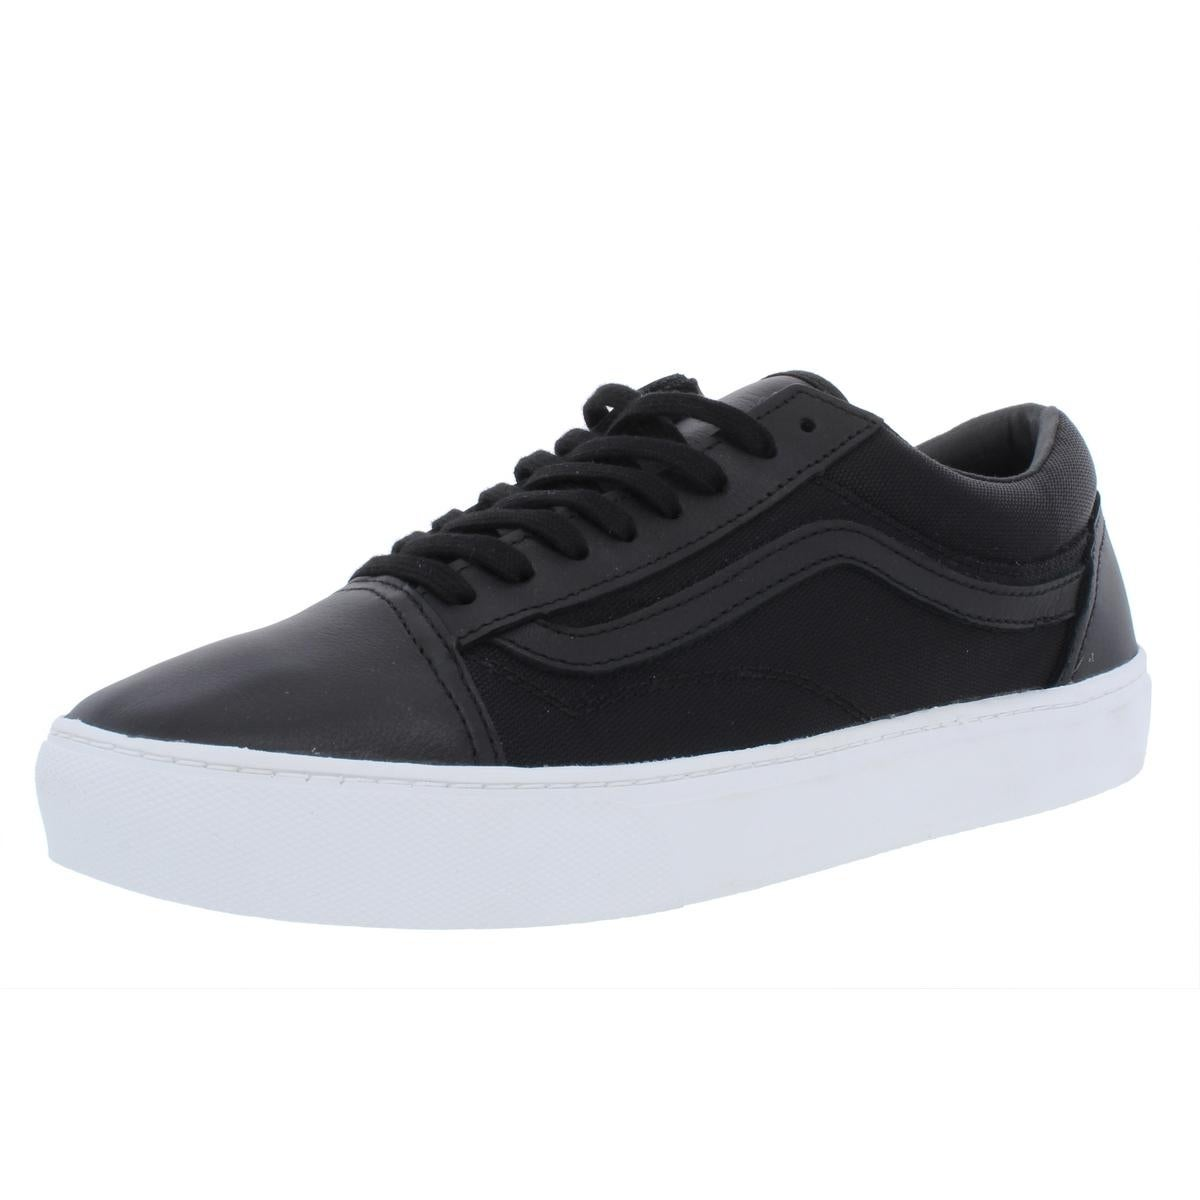 Schuhe Skool Fashion Old Vans Shops Leder Cup Weiß Herren